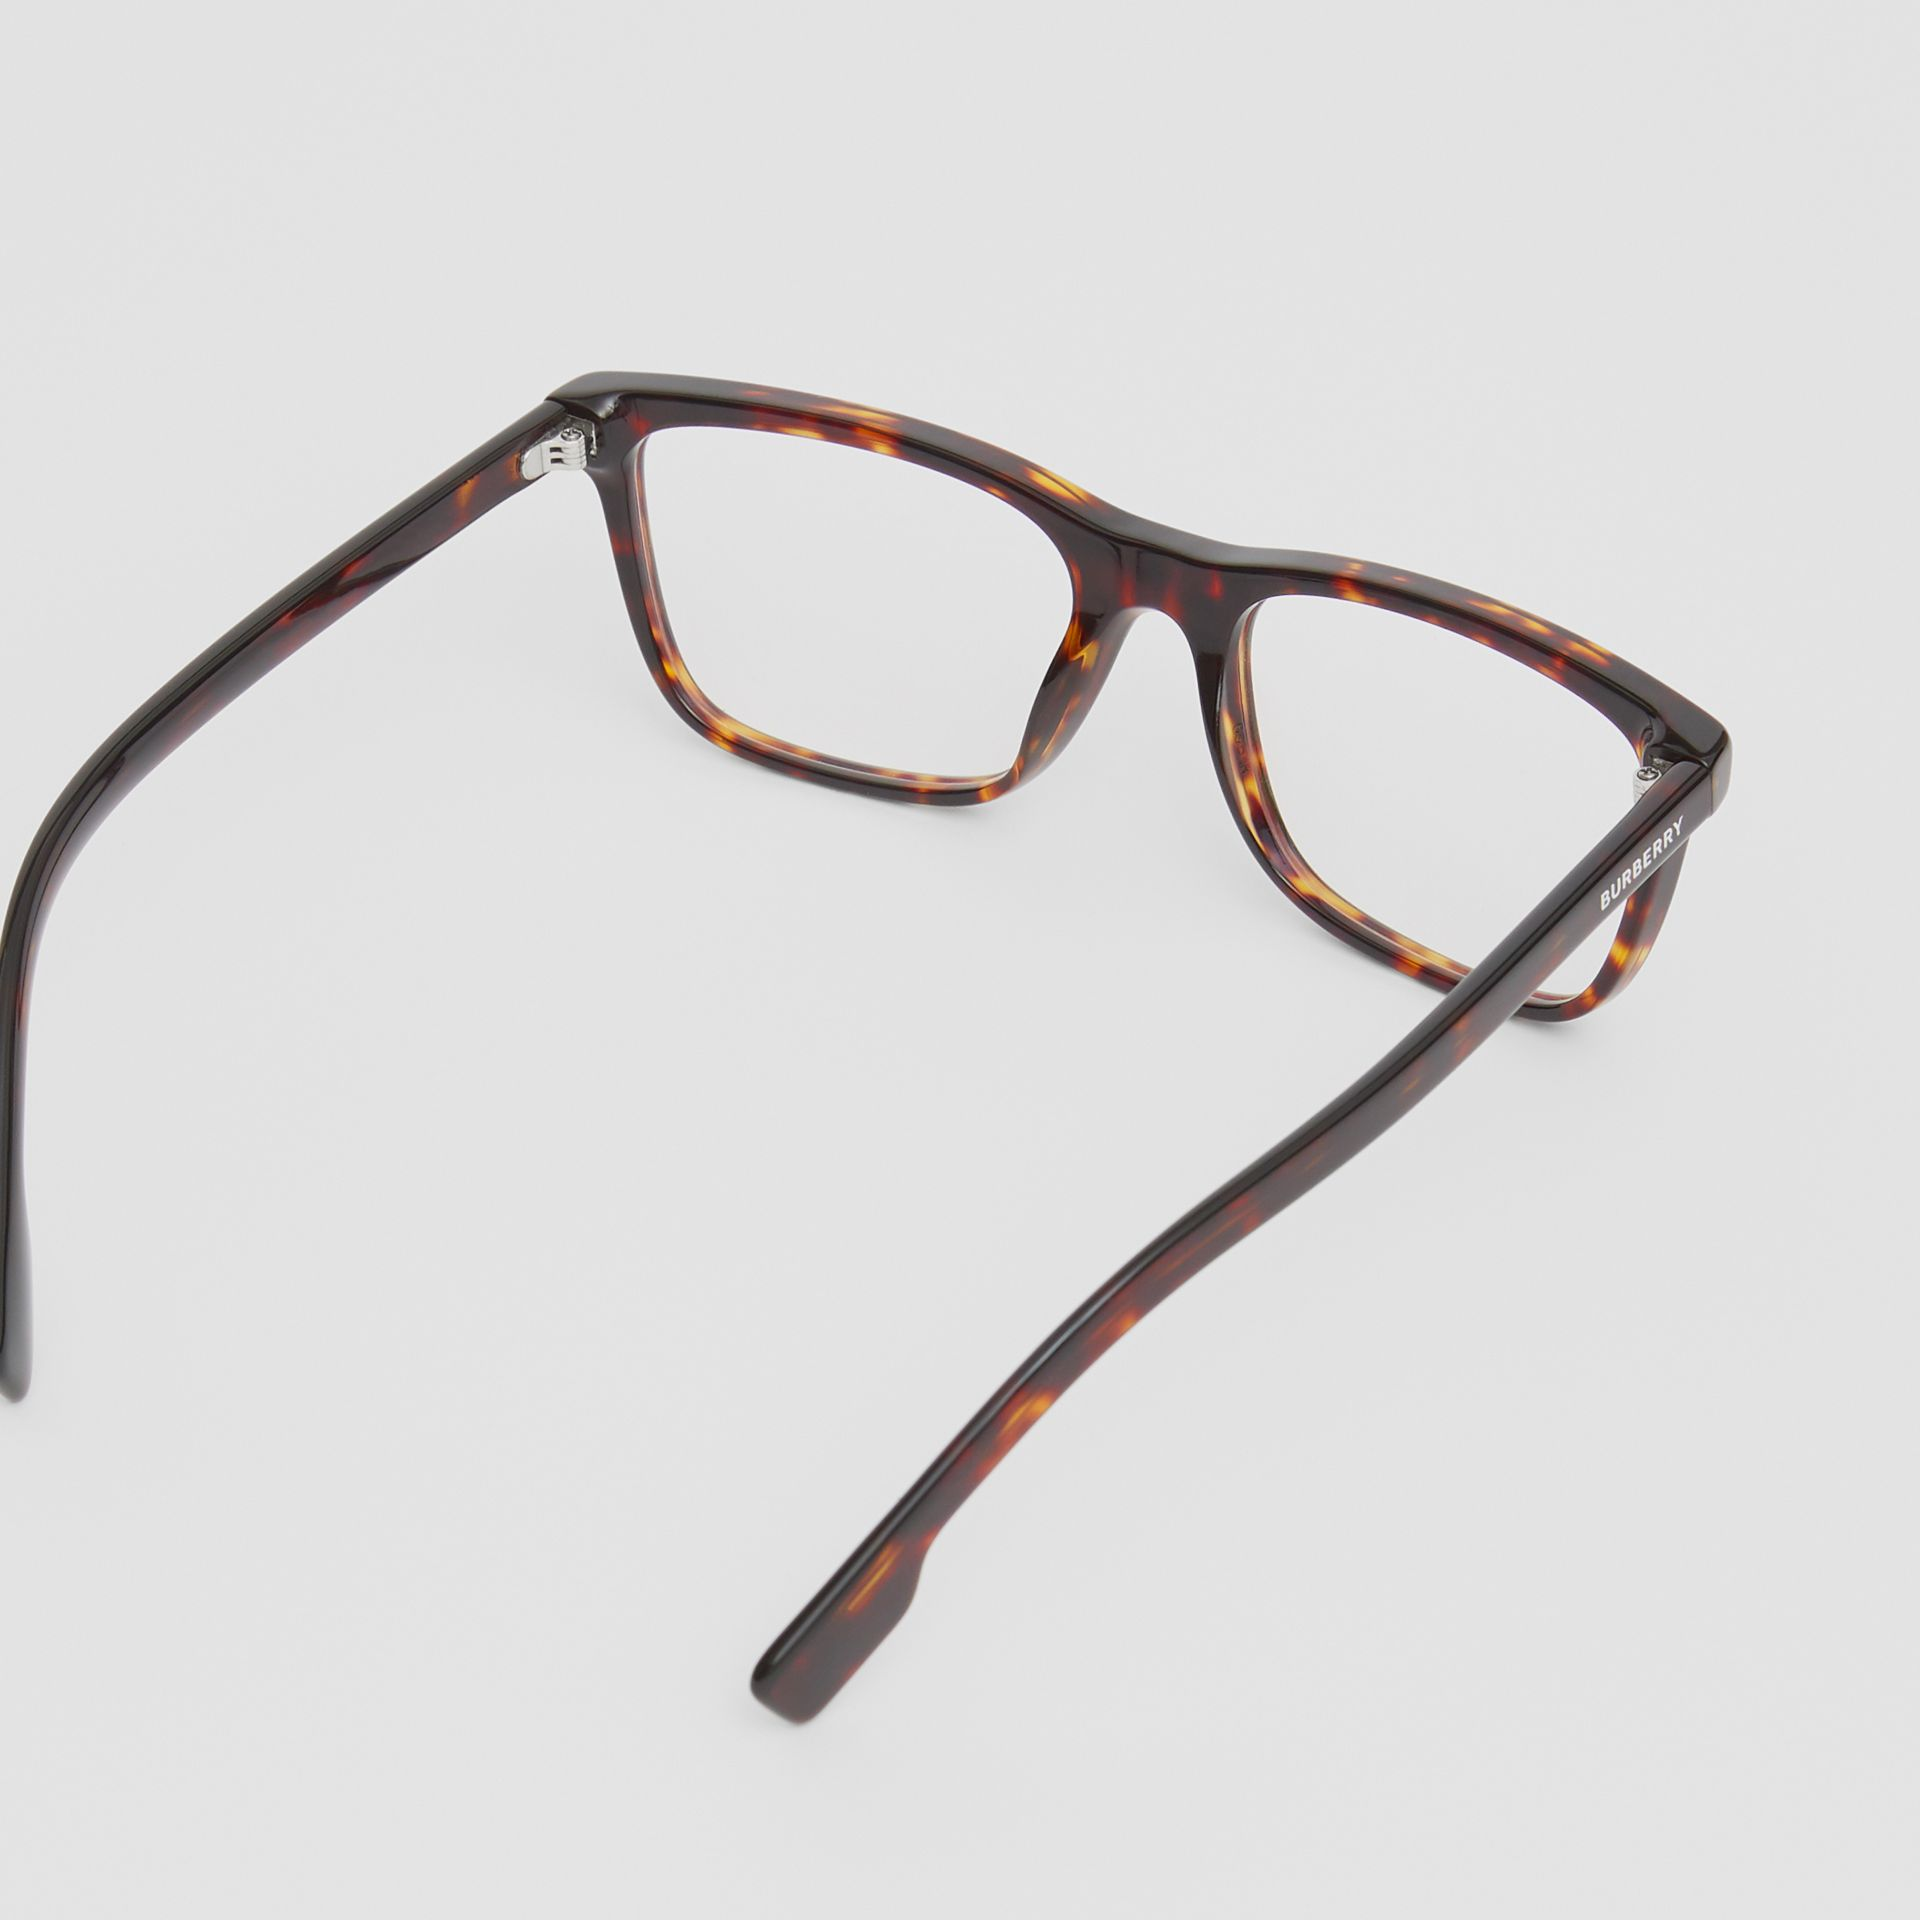 Rectangular Optical Frames in Tortoiseshell - Men | Burberry Australia - gallery image 4